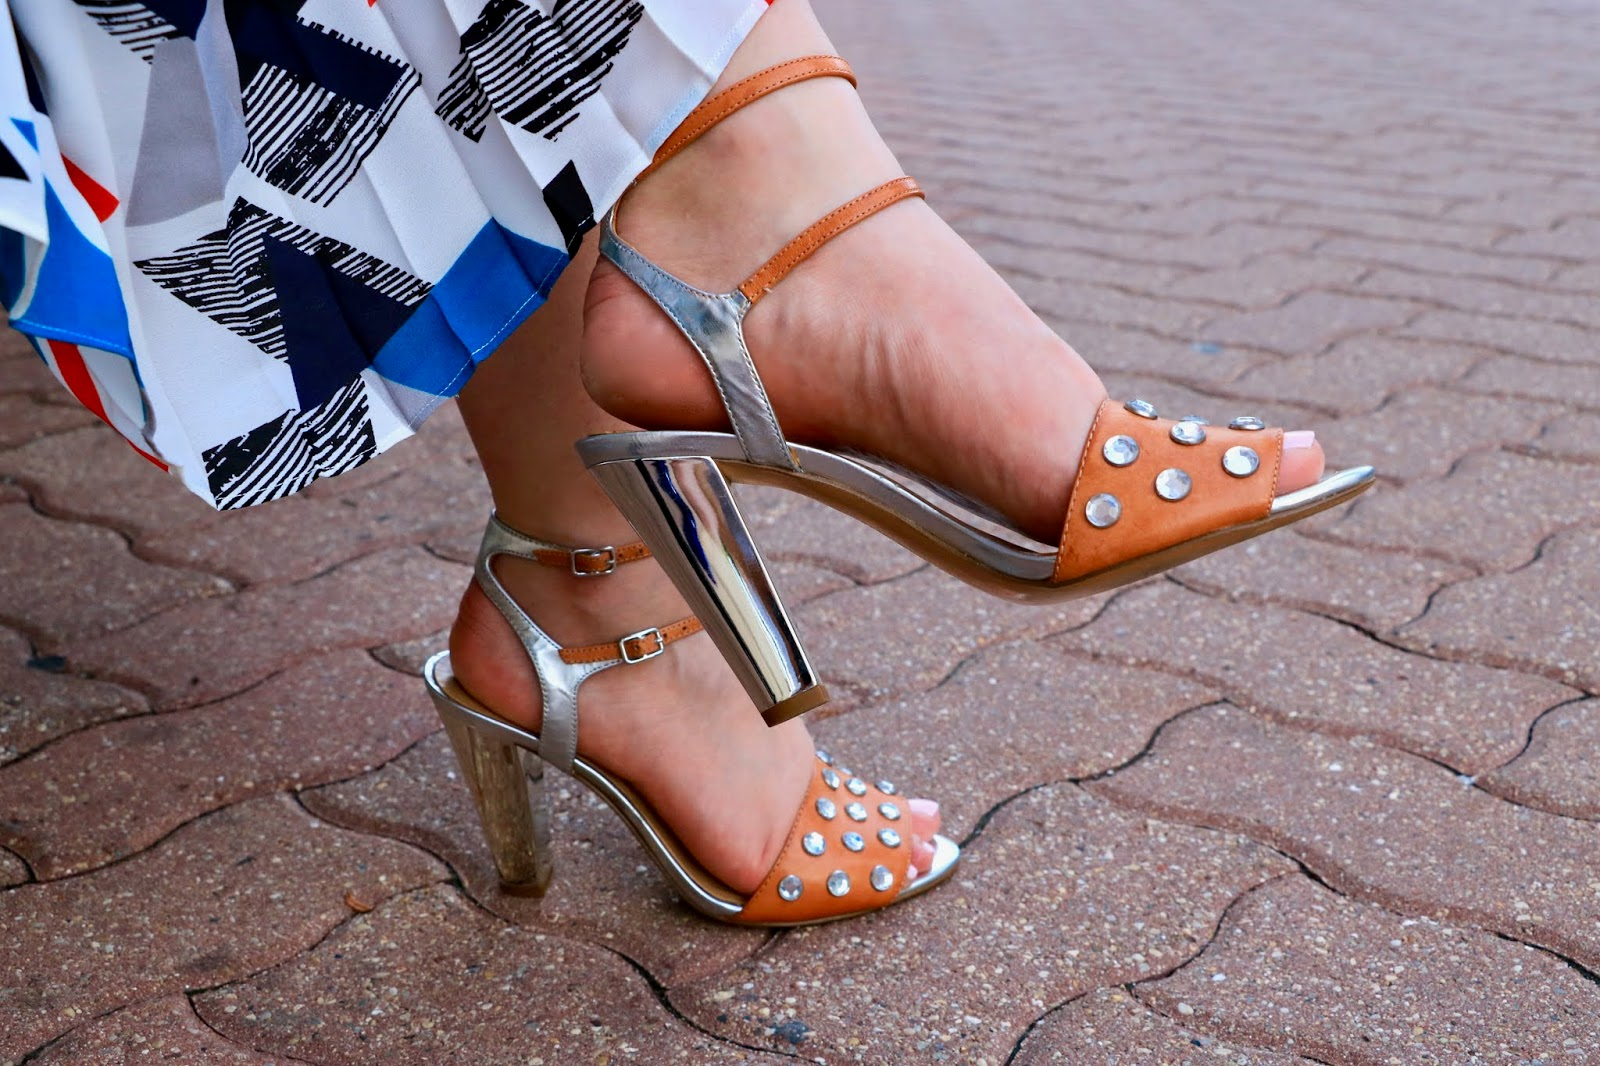 Nyc fashion blogger Kathleen Harper wearing bedazzled metallic and nude heels from Banana Republic.